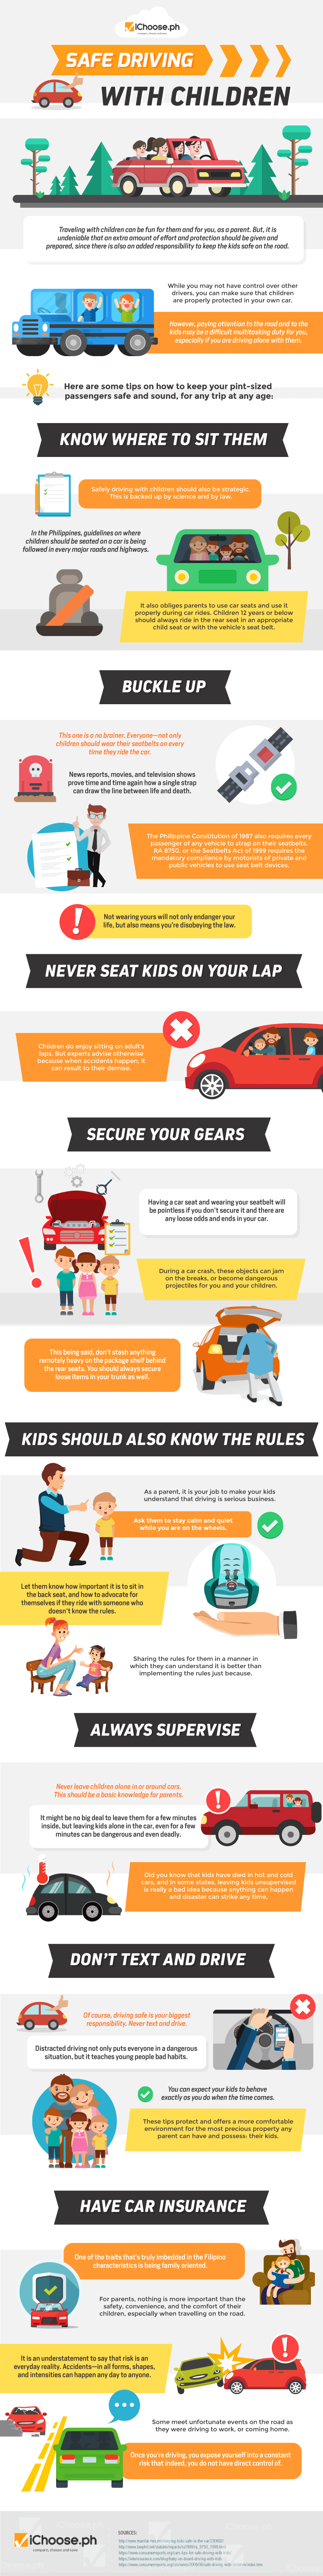 Safe-driving-with-children